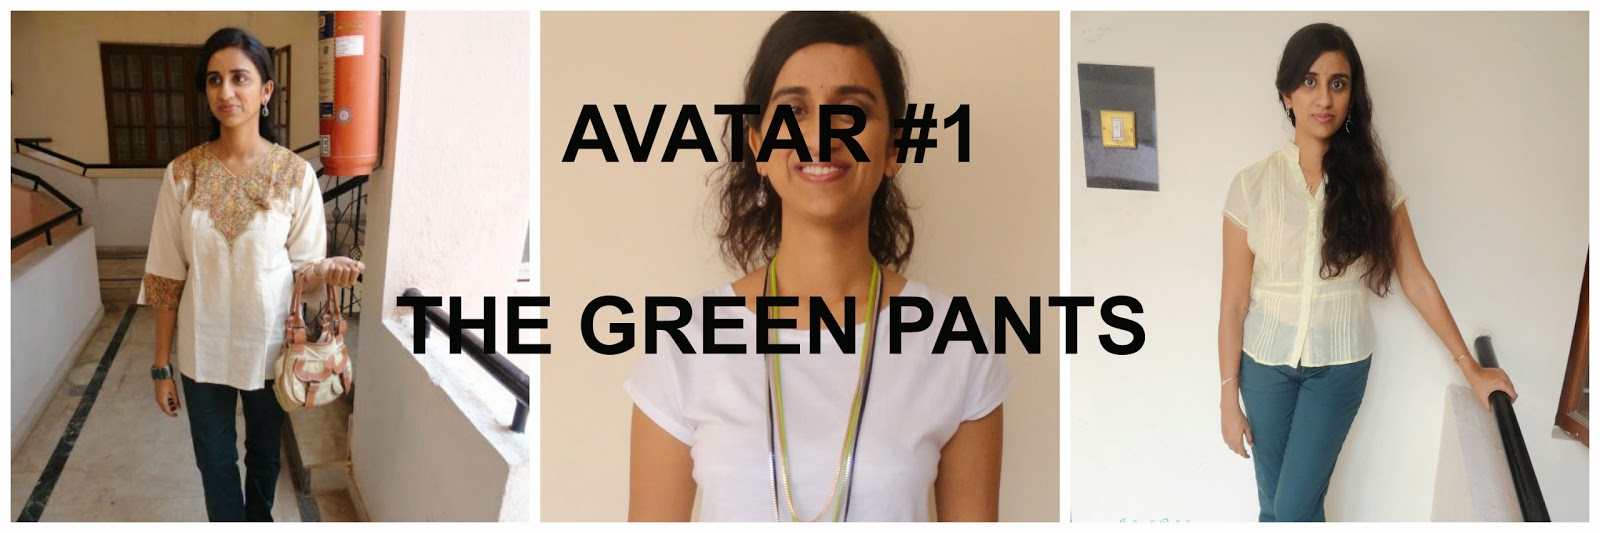 AVATAR #1: The green pants- part 1 image